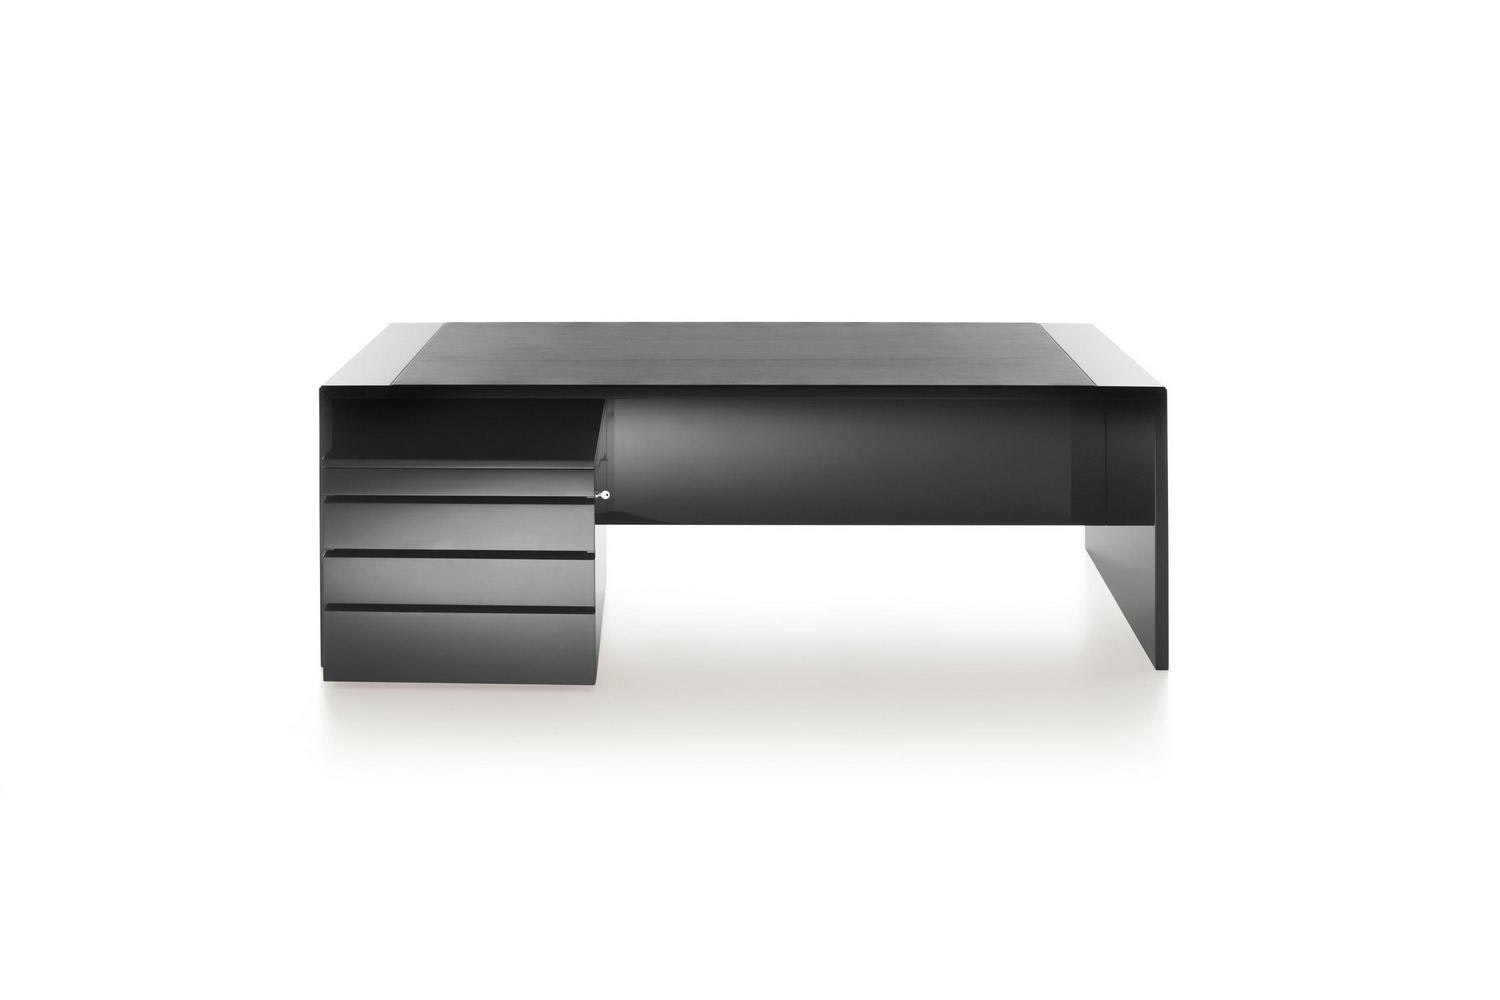 W52 Loop Desk by Kazuhide Takahama for Cassina